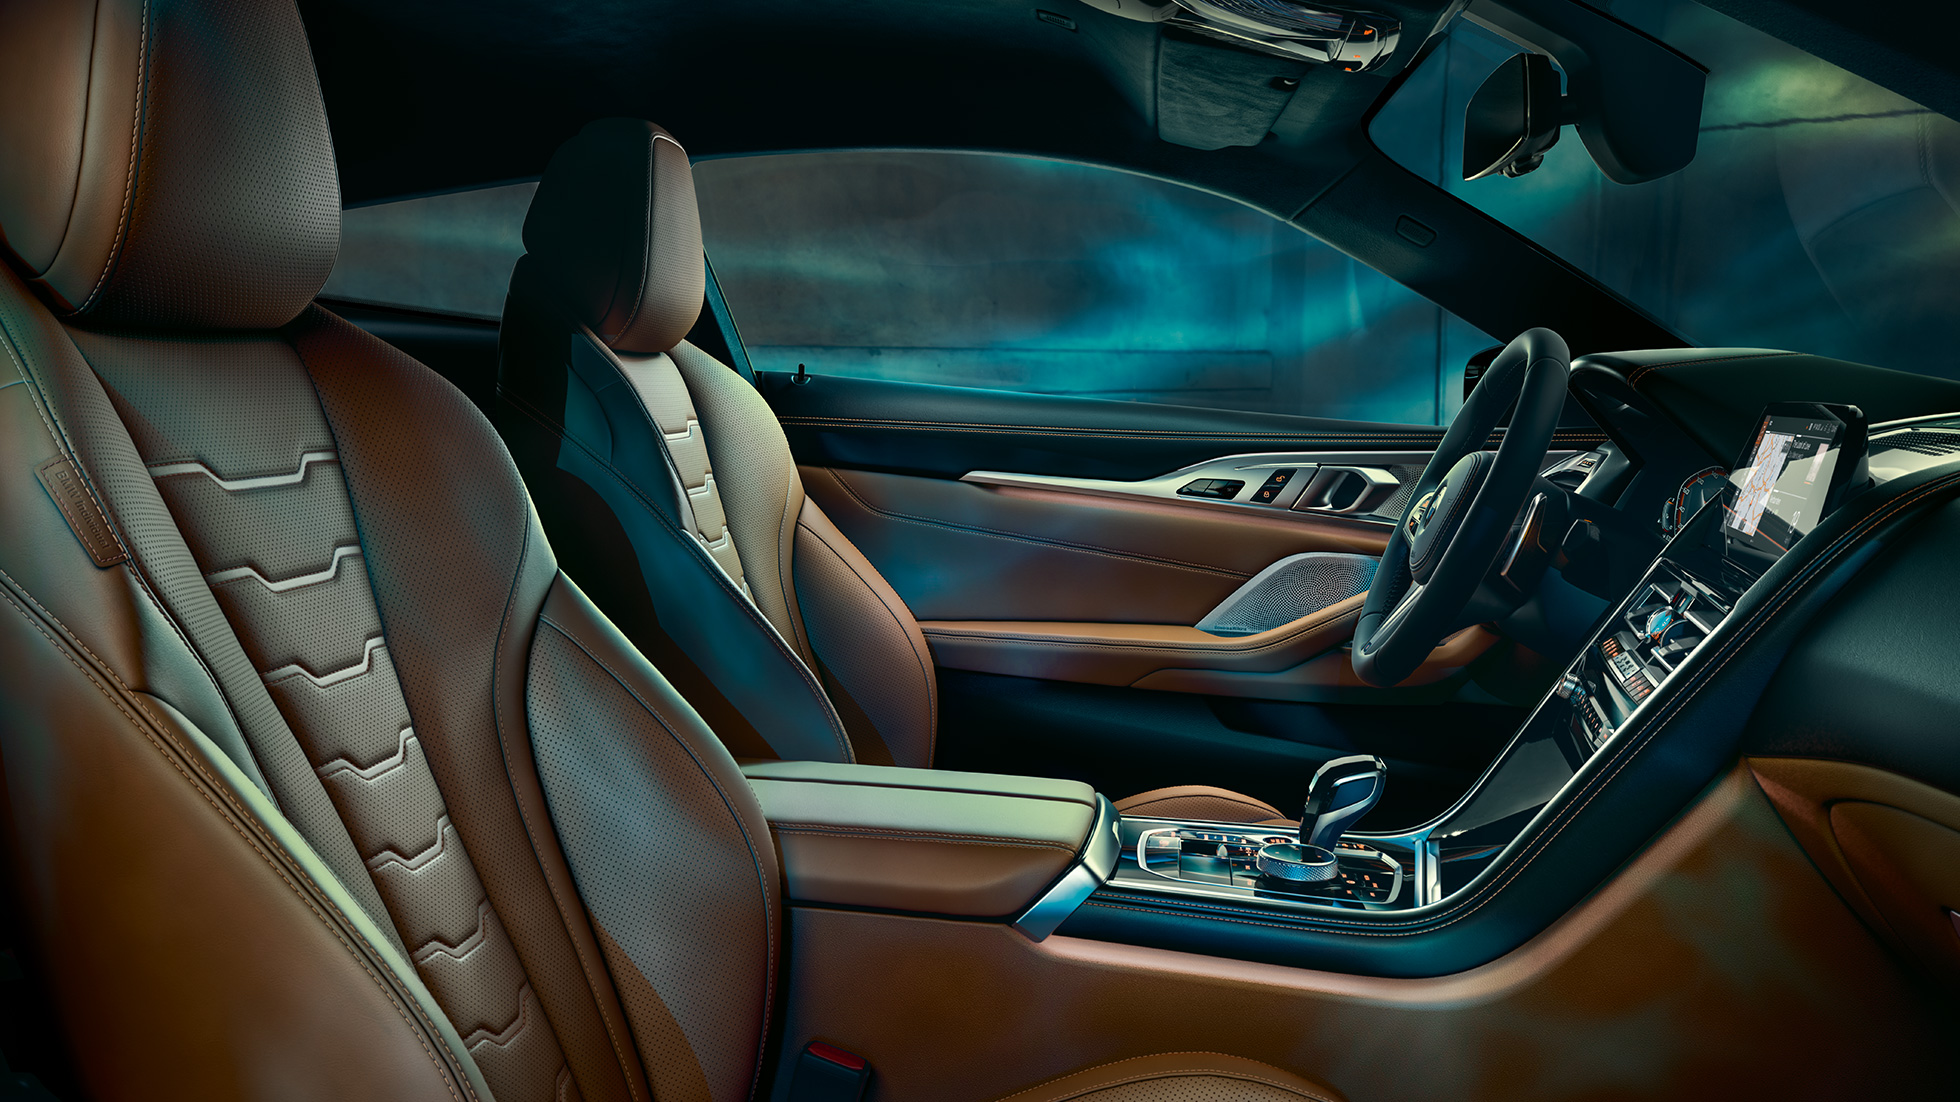 BMW M850i xDrive Coupé, interior with multifunctional seats in BMW Individual extended leather 'Merino' Tartufo/Black.